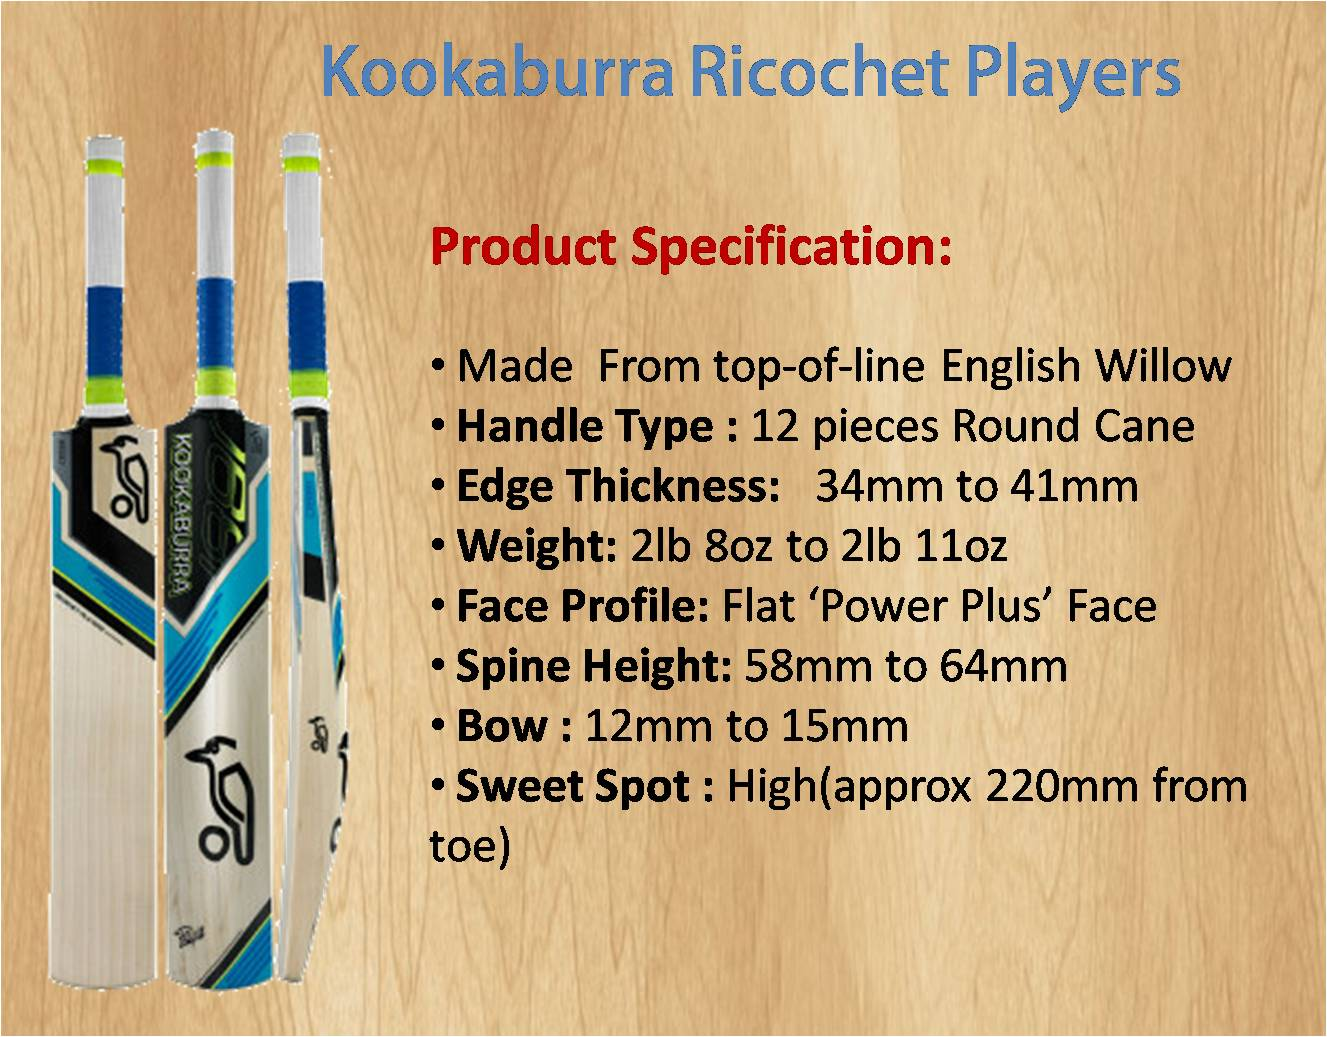 Kookaburra Ricochet Players Cricket Bat